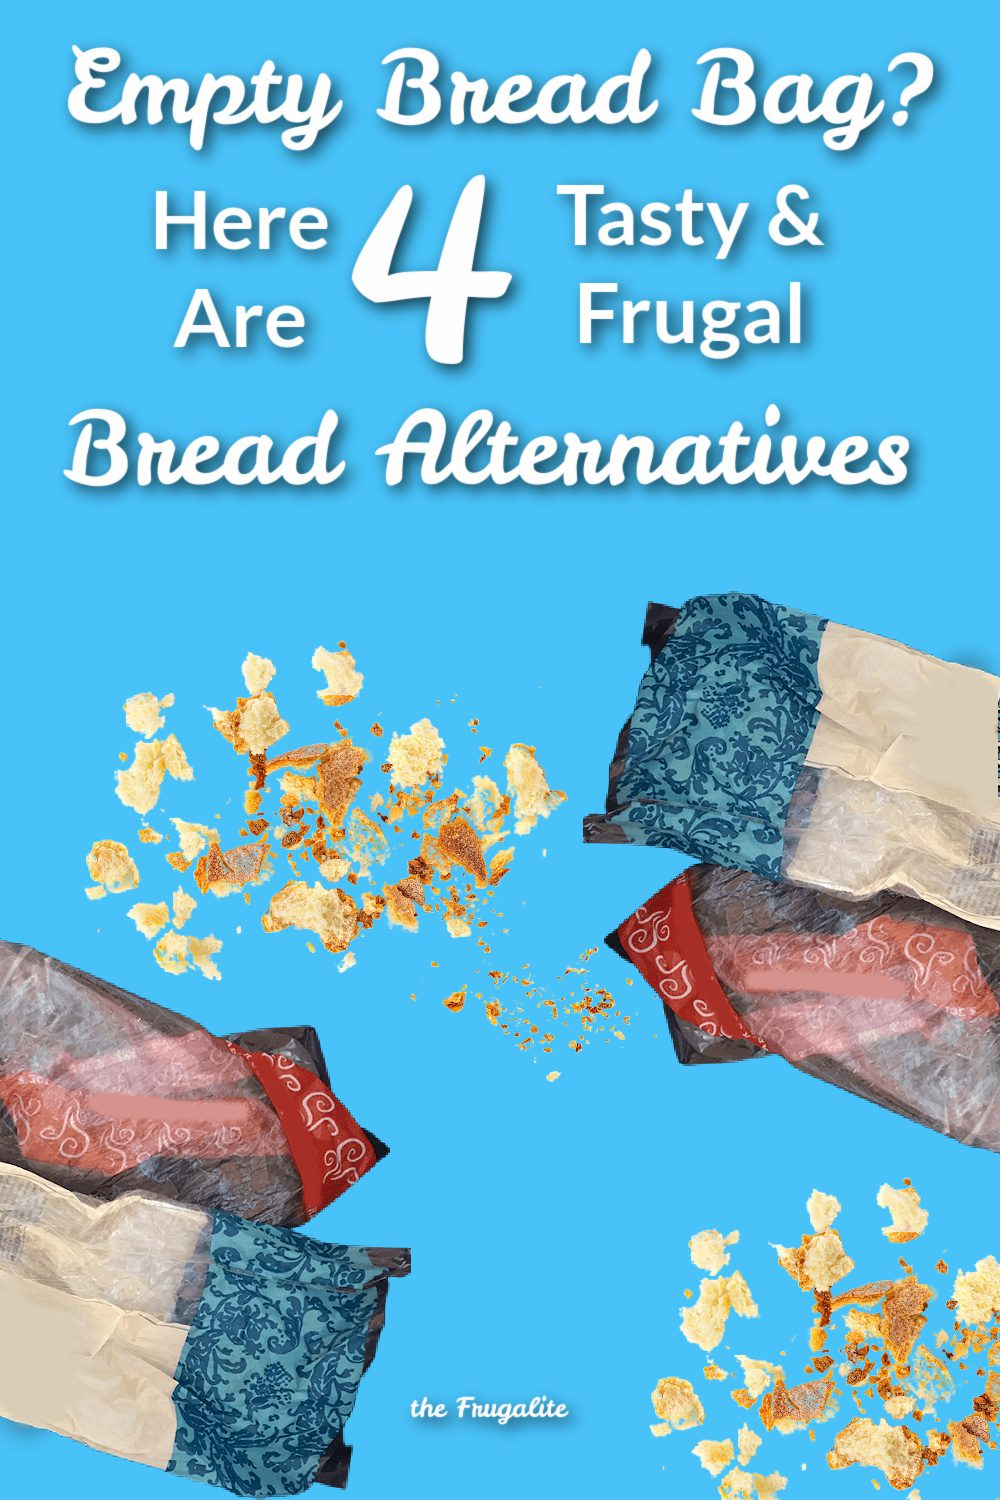 Empty Bread Bag? Here Are 4 Tasty, Frugal Bread Alternatives